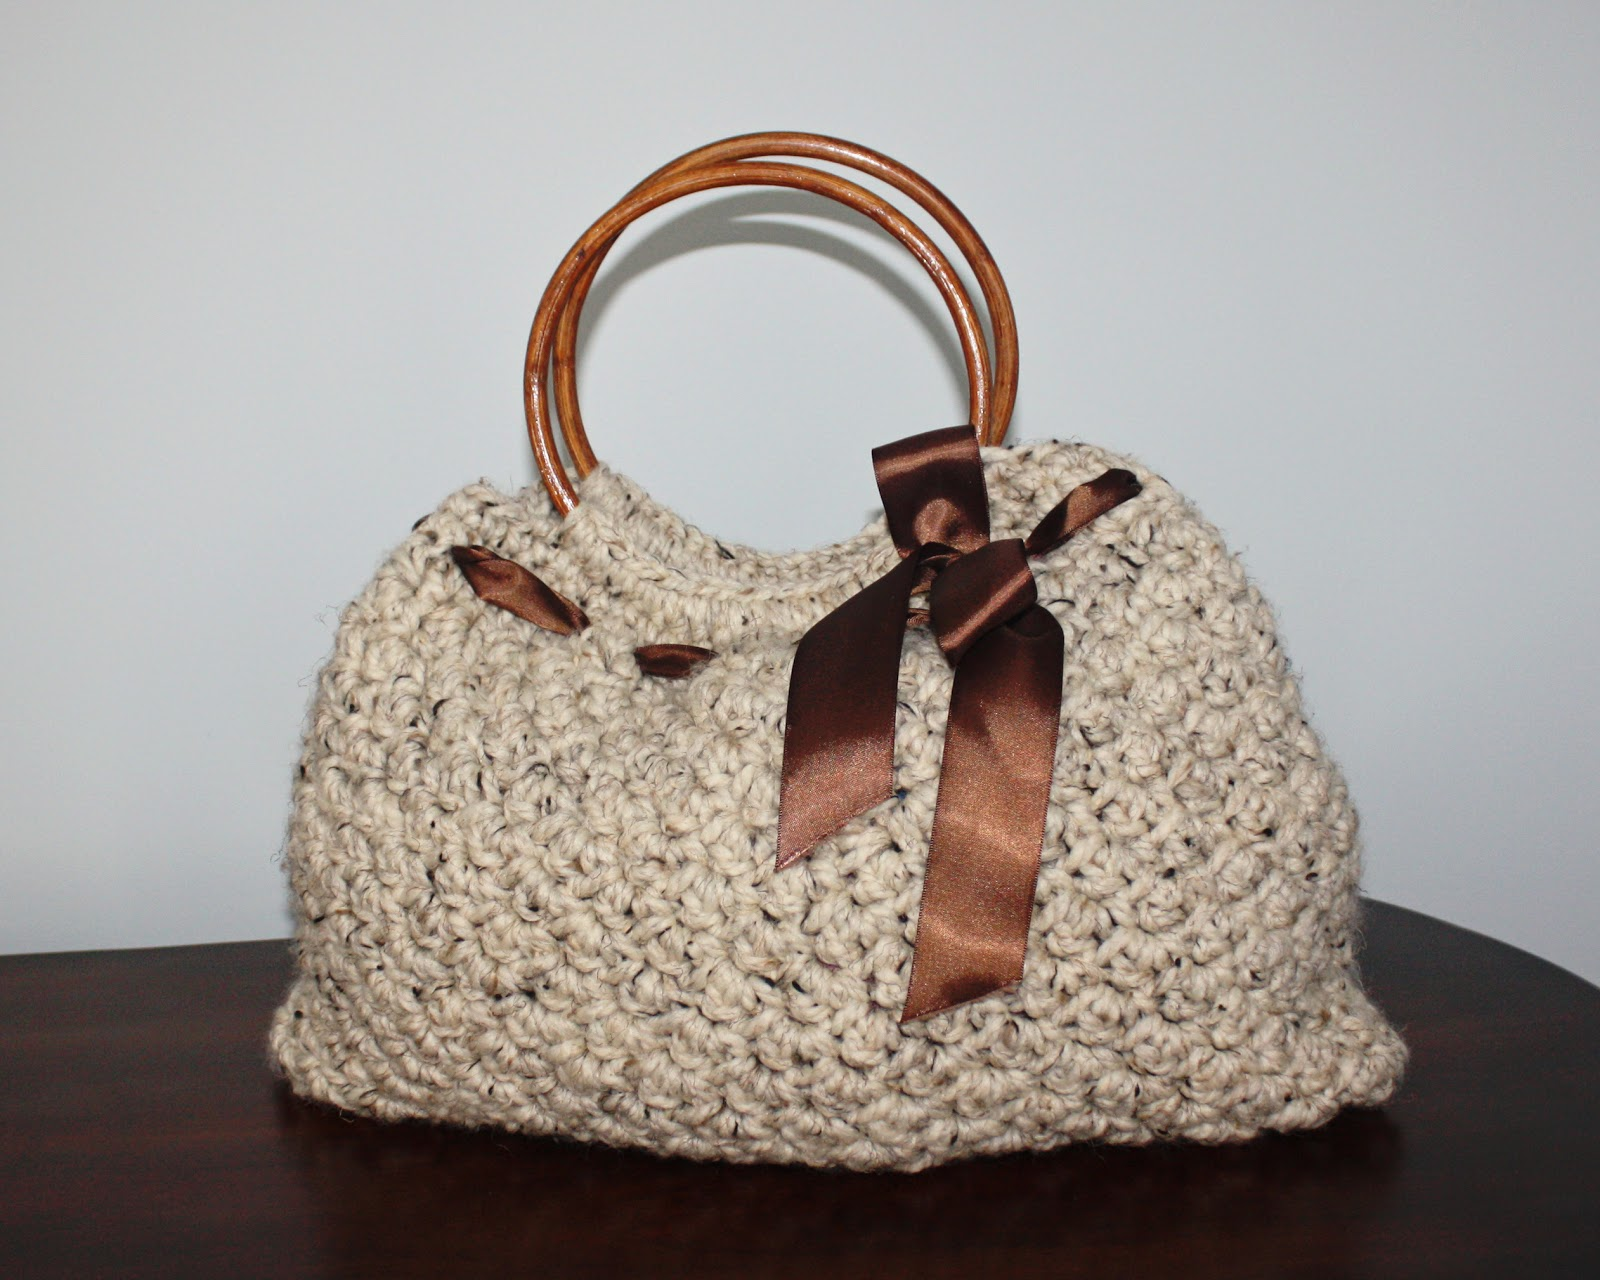 Crocheted Handbag : Pretty Darn Adorable Crochet: Free Patterns